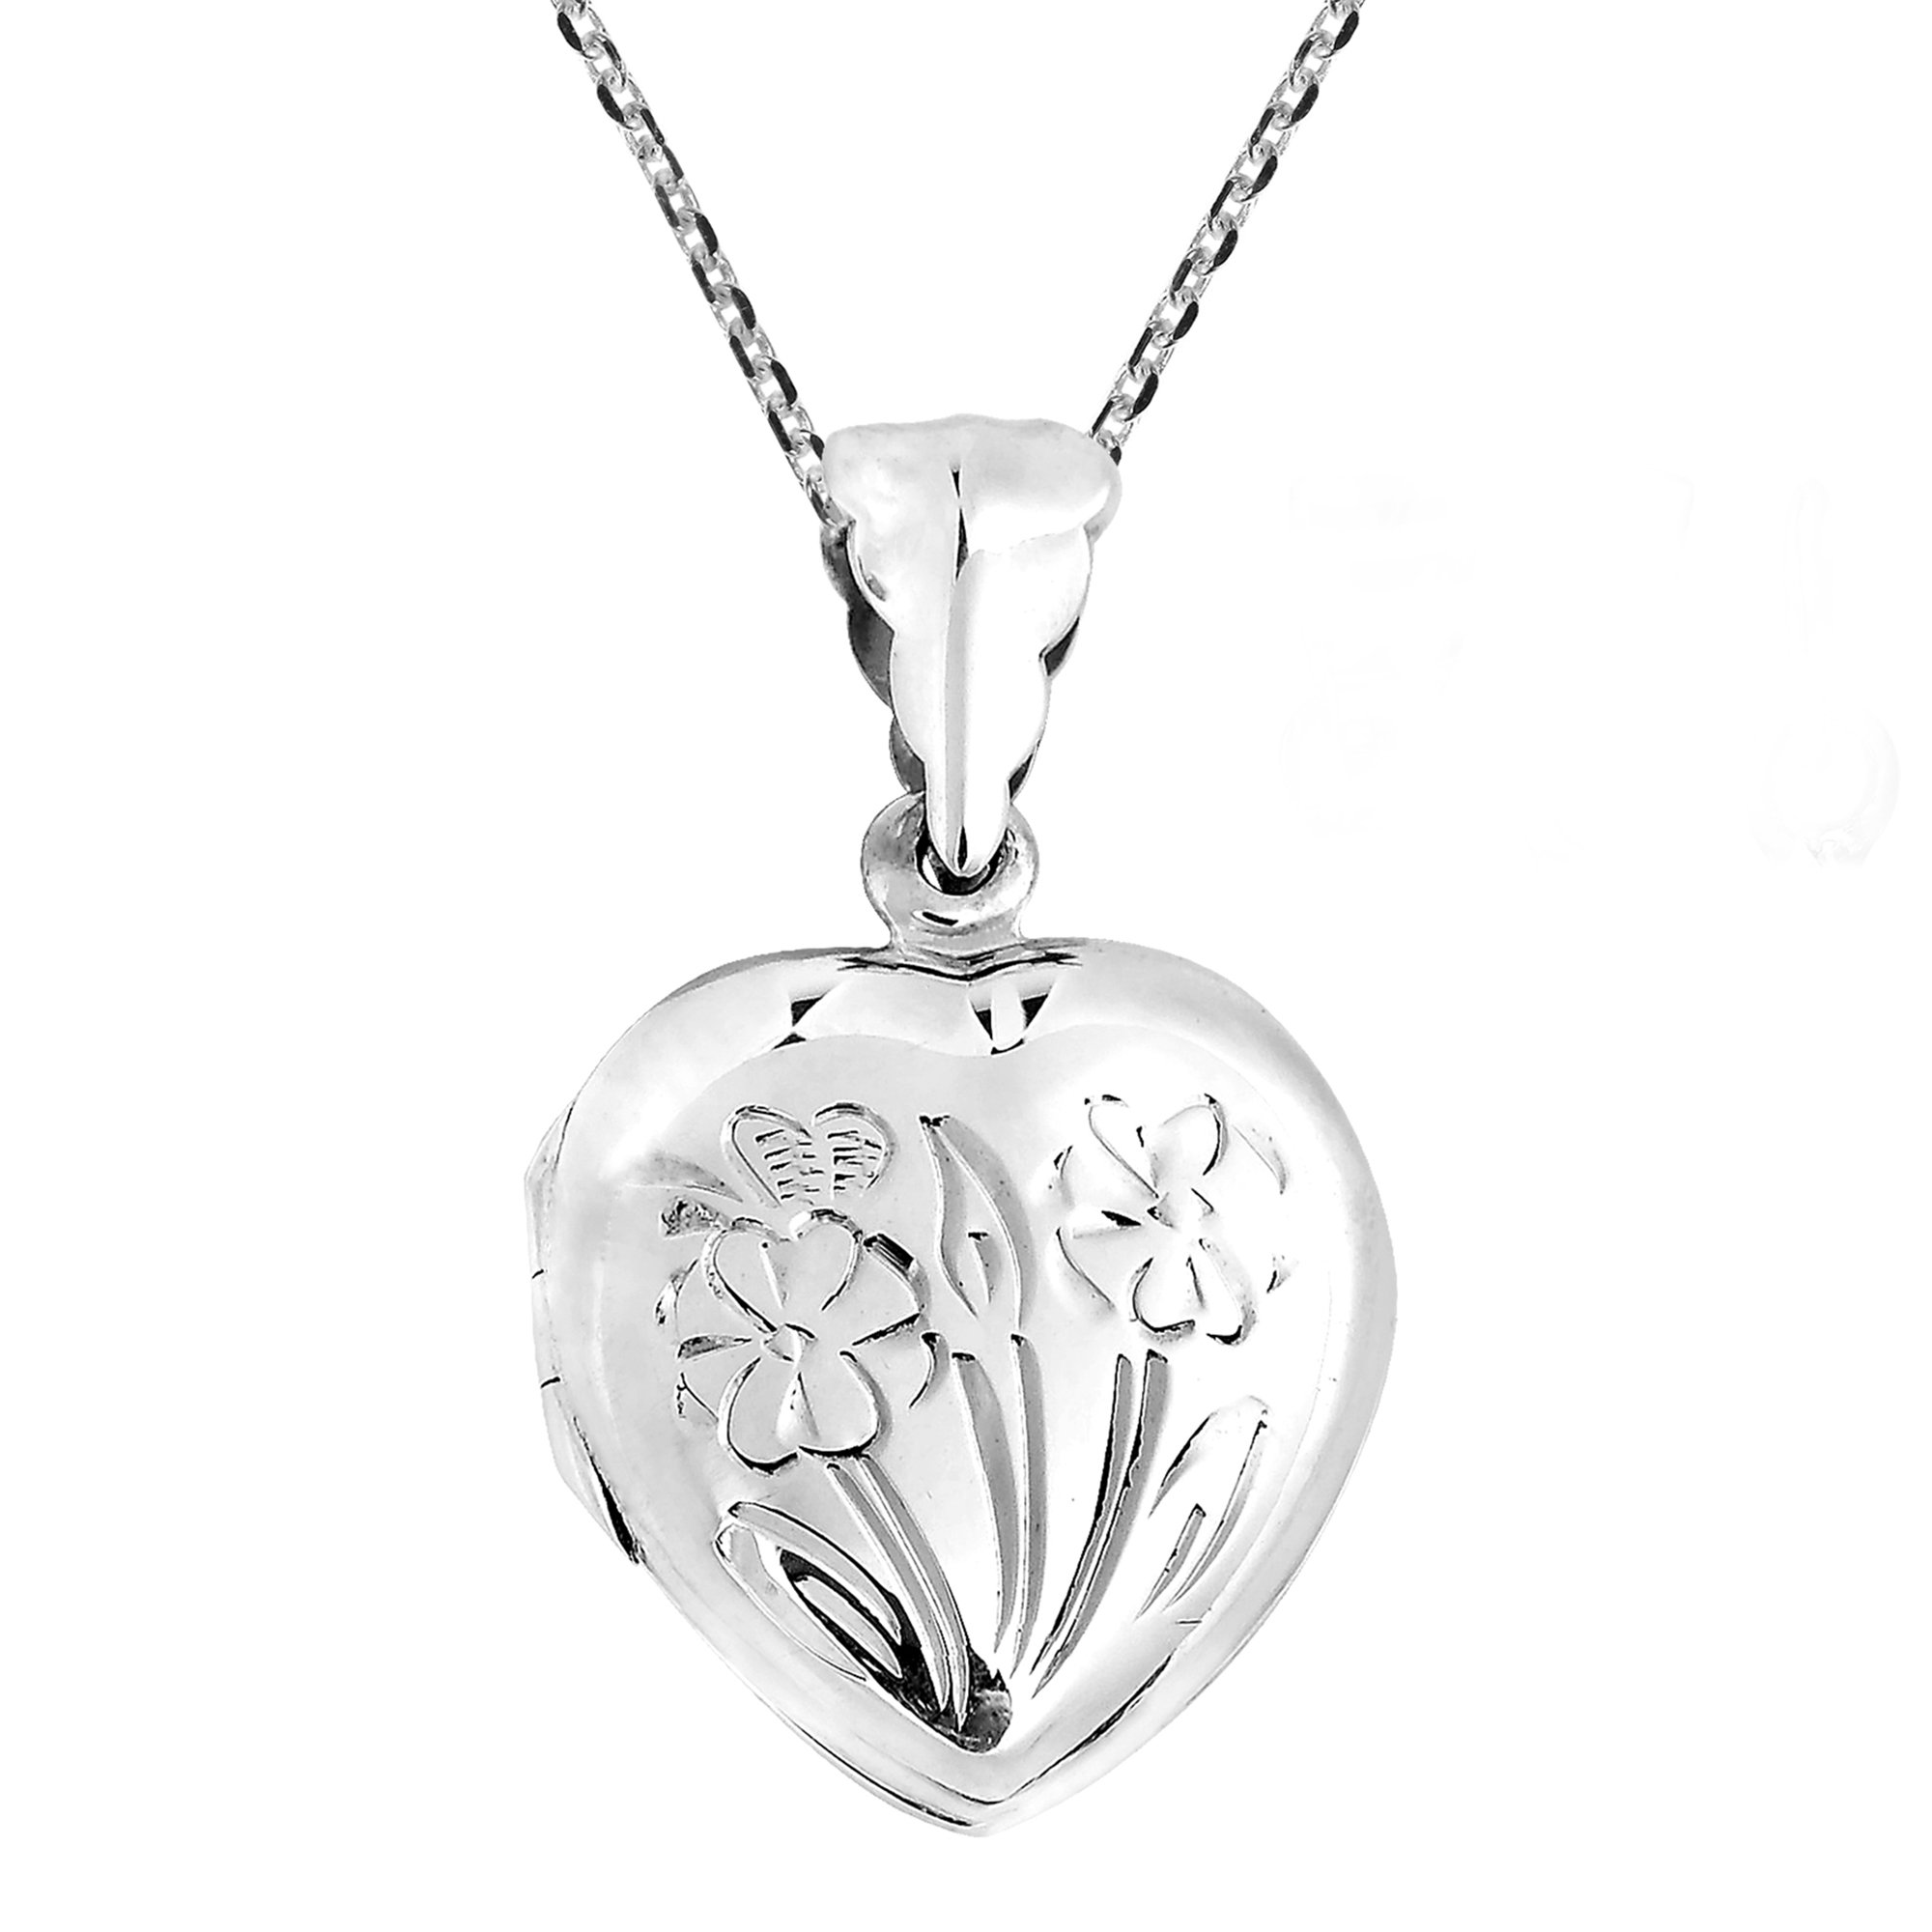 AeraVida Heart of Floral Blossoms Locket .925 Sterling Silver Pendant Necklace by AeraVida